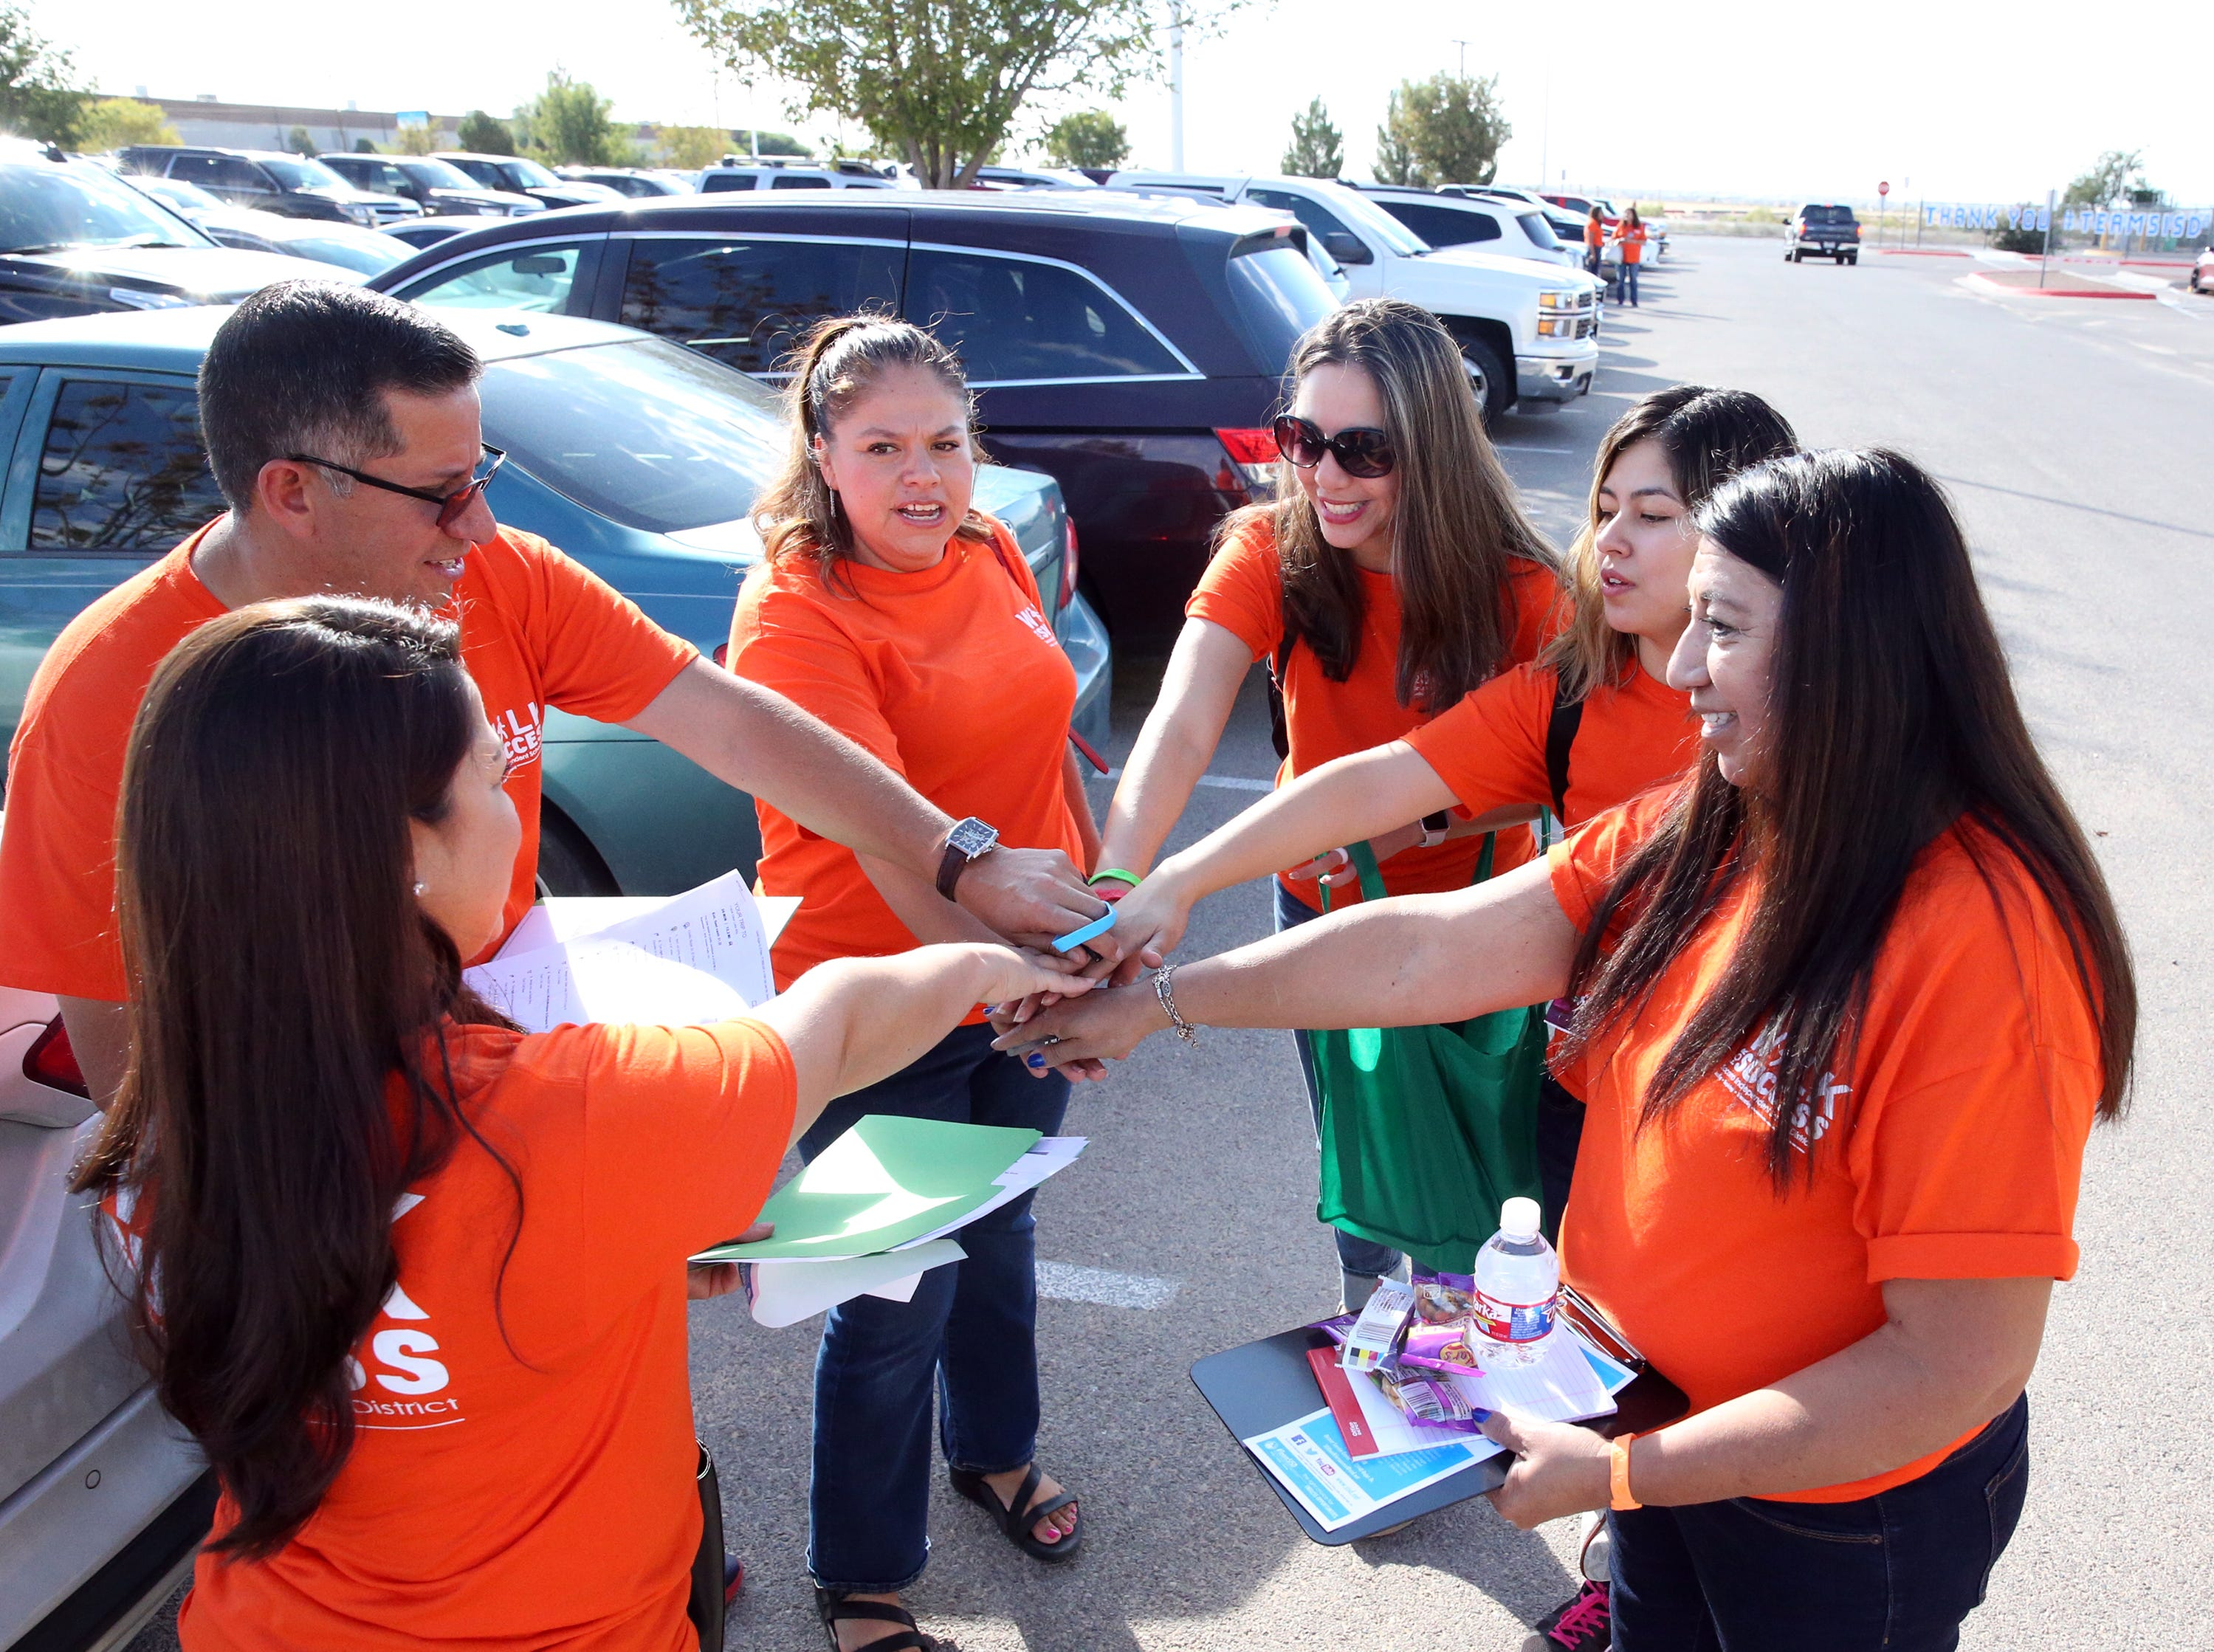 "Gabriela Elliott, top right, principal at Bill Sybert K-8 School leads a Socorro school district team in a cheer before heading out to meet with high school students who are no longer enrolled in school during the district's 5th Annual Walk for Success Saturday at the district's service center at 1244 Rojas Drive. Over 300 district teachers, counselors, administrators and others sought out 156 students to encourage them to finish school and earn a diploma. The number is down from the first year of Walk for Success when they sought 300 students who had left school. ""Were not going to give up on them,"" said district superintendent Jose Espinoza, 'Thats what this is about.' The district's graduation rate, which stands at 91.3 percent is in part dependent on the success of this effort, he added. Cory Craft, academic compliance officer with the Socorro school district said options such as an alternative high school, online learning and creative scheduling at their home campus are ways the district can help them earn a diploma. William Serrata, president of El Paso Community College was on hand to lend support to the effort. ""They really take it seriously. They treat every student as if it was their own child,' he said. 'If they don't graduate from high school we can't enroll them at the college.'"